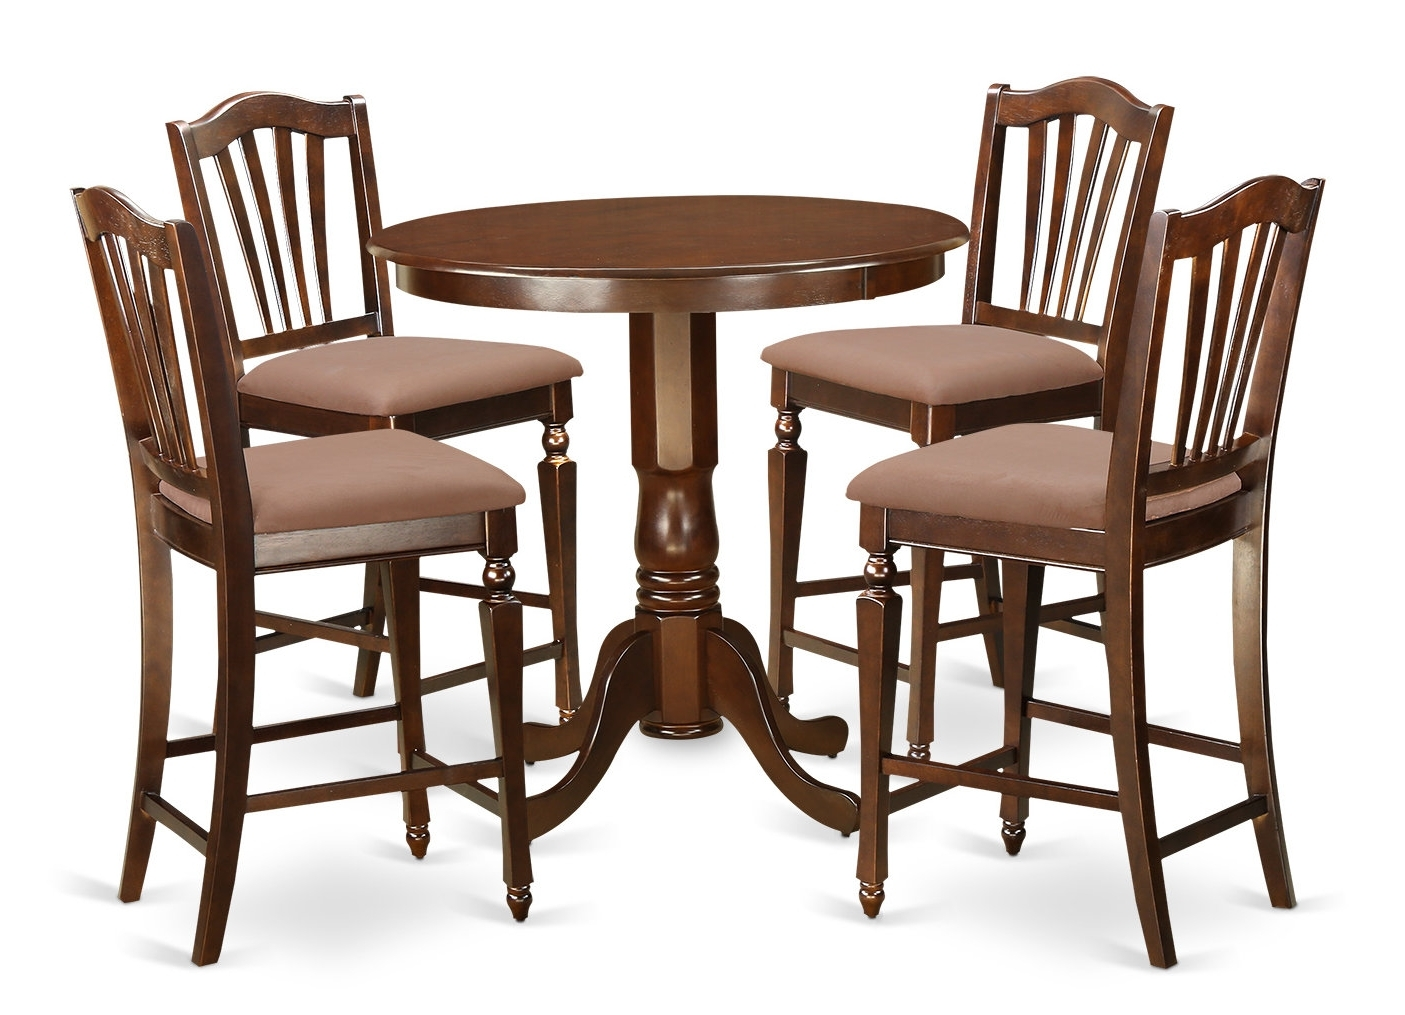 East West Jackson 5 Piece Counter Height Pub Table Set